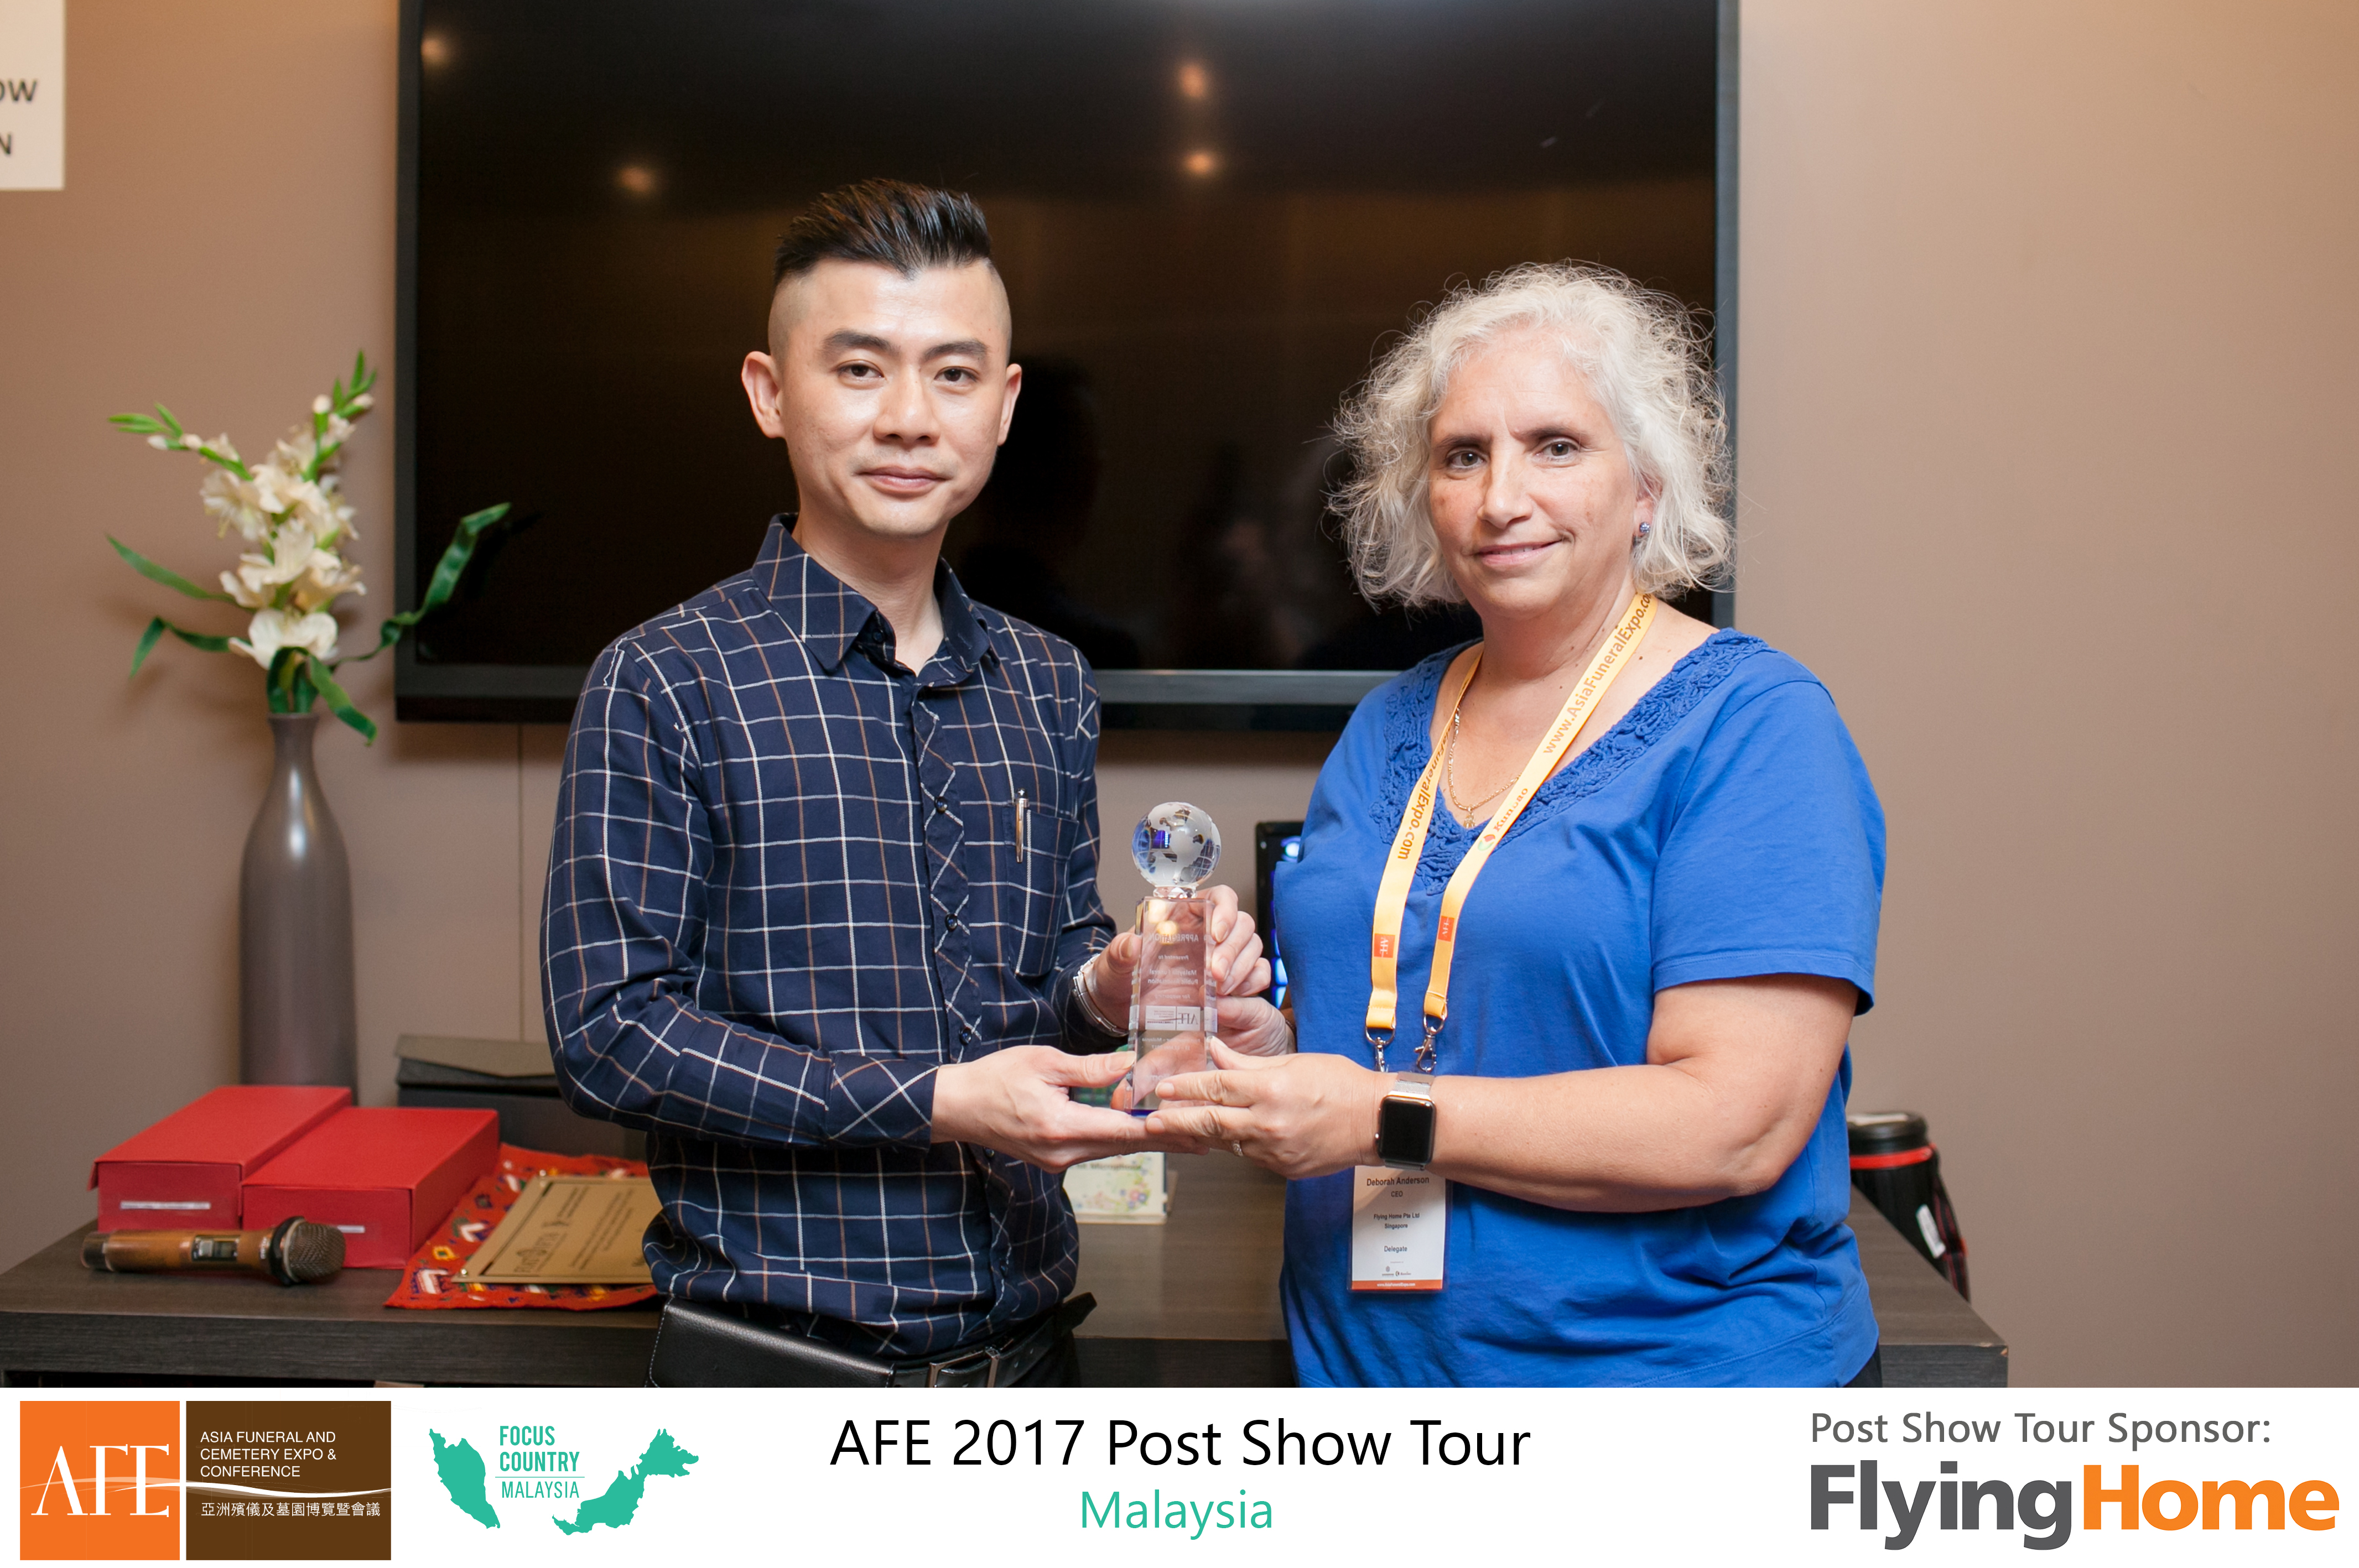 AFE Post Show Tour 2017 Day 1 - 18